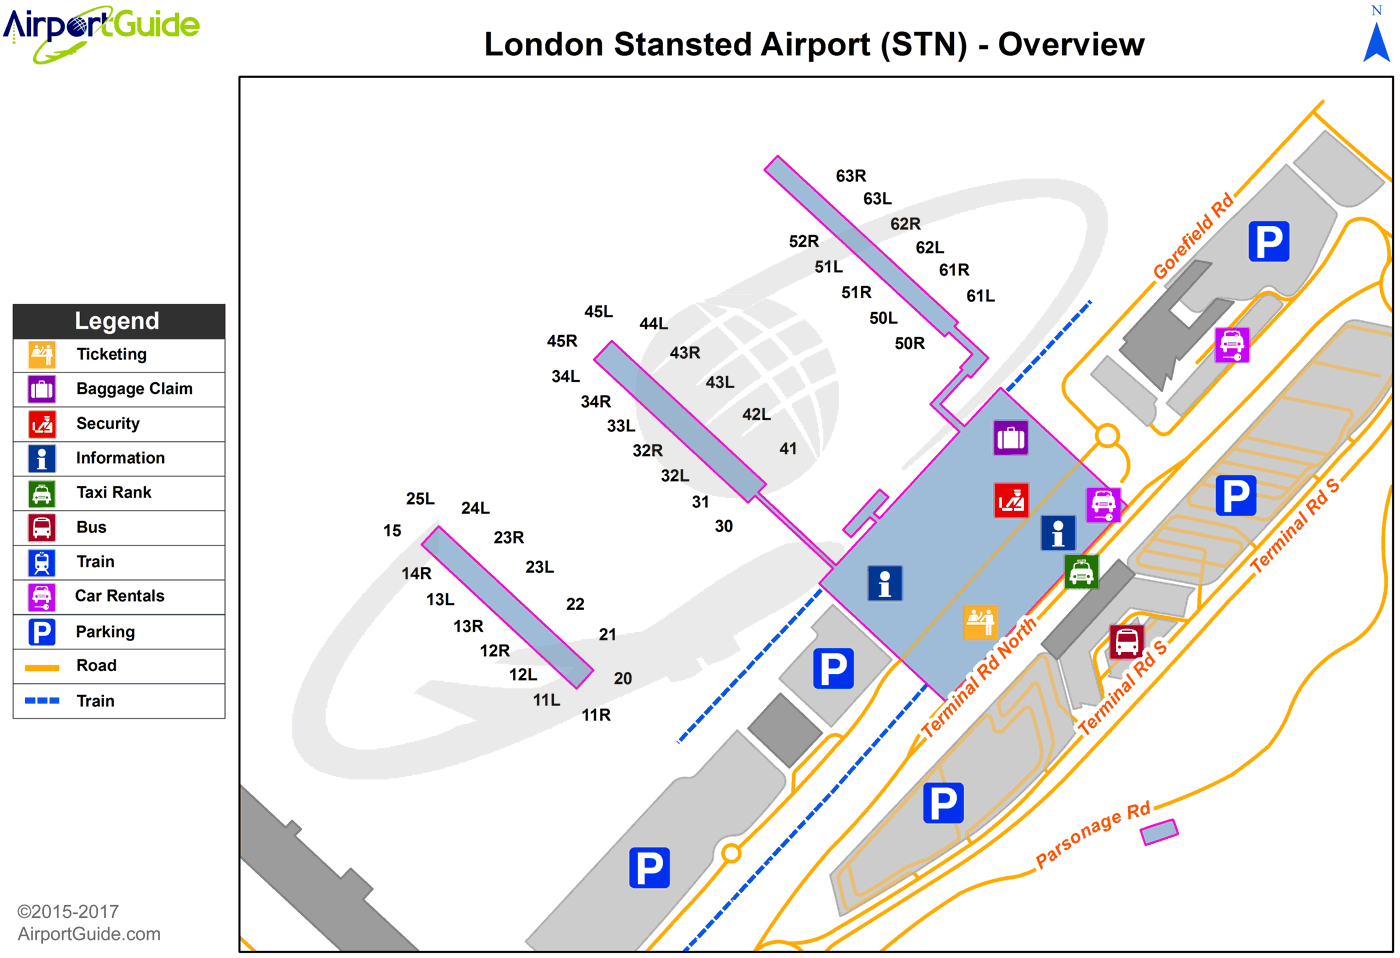 London London Stansted Stn Airport Terminal Map Overview